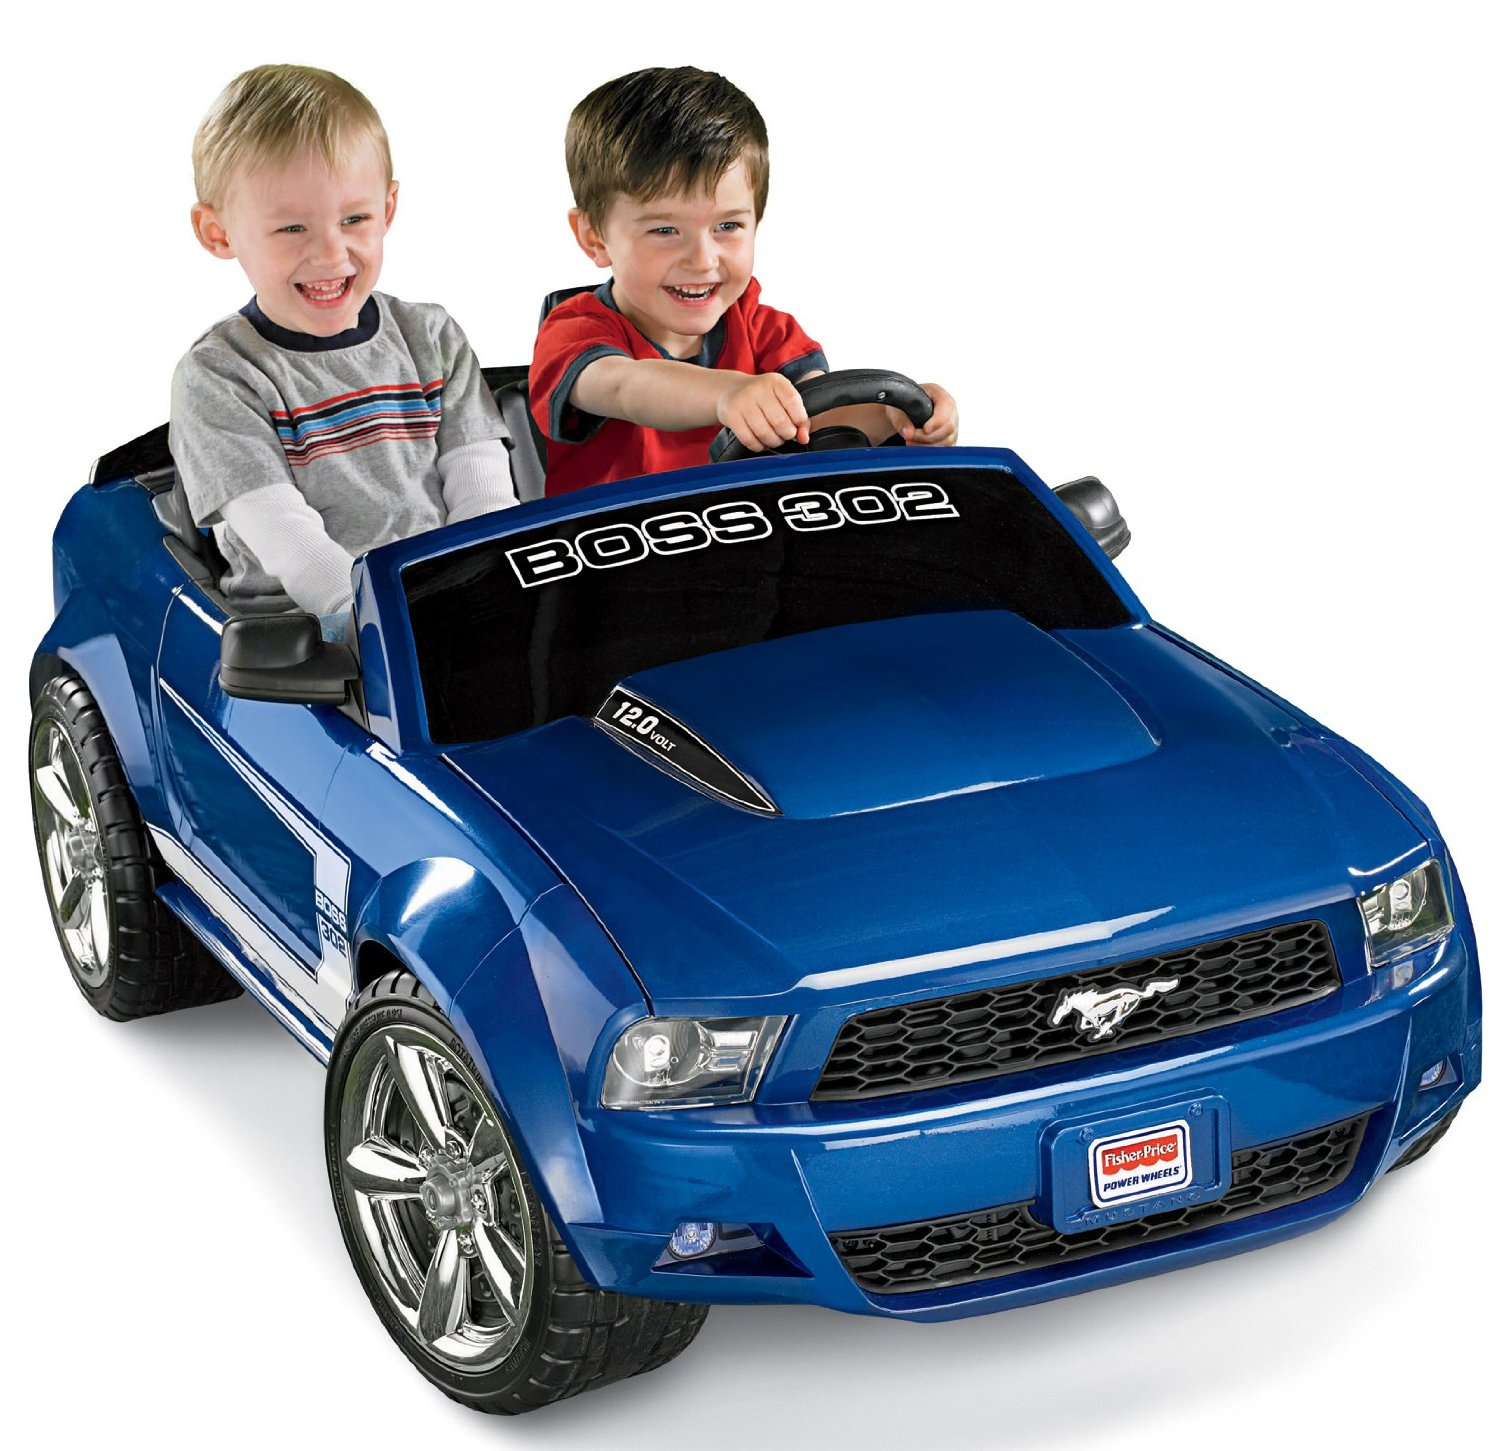 Cool Boy Toys 2013 : Fun gifts for year old boys